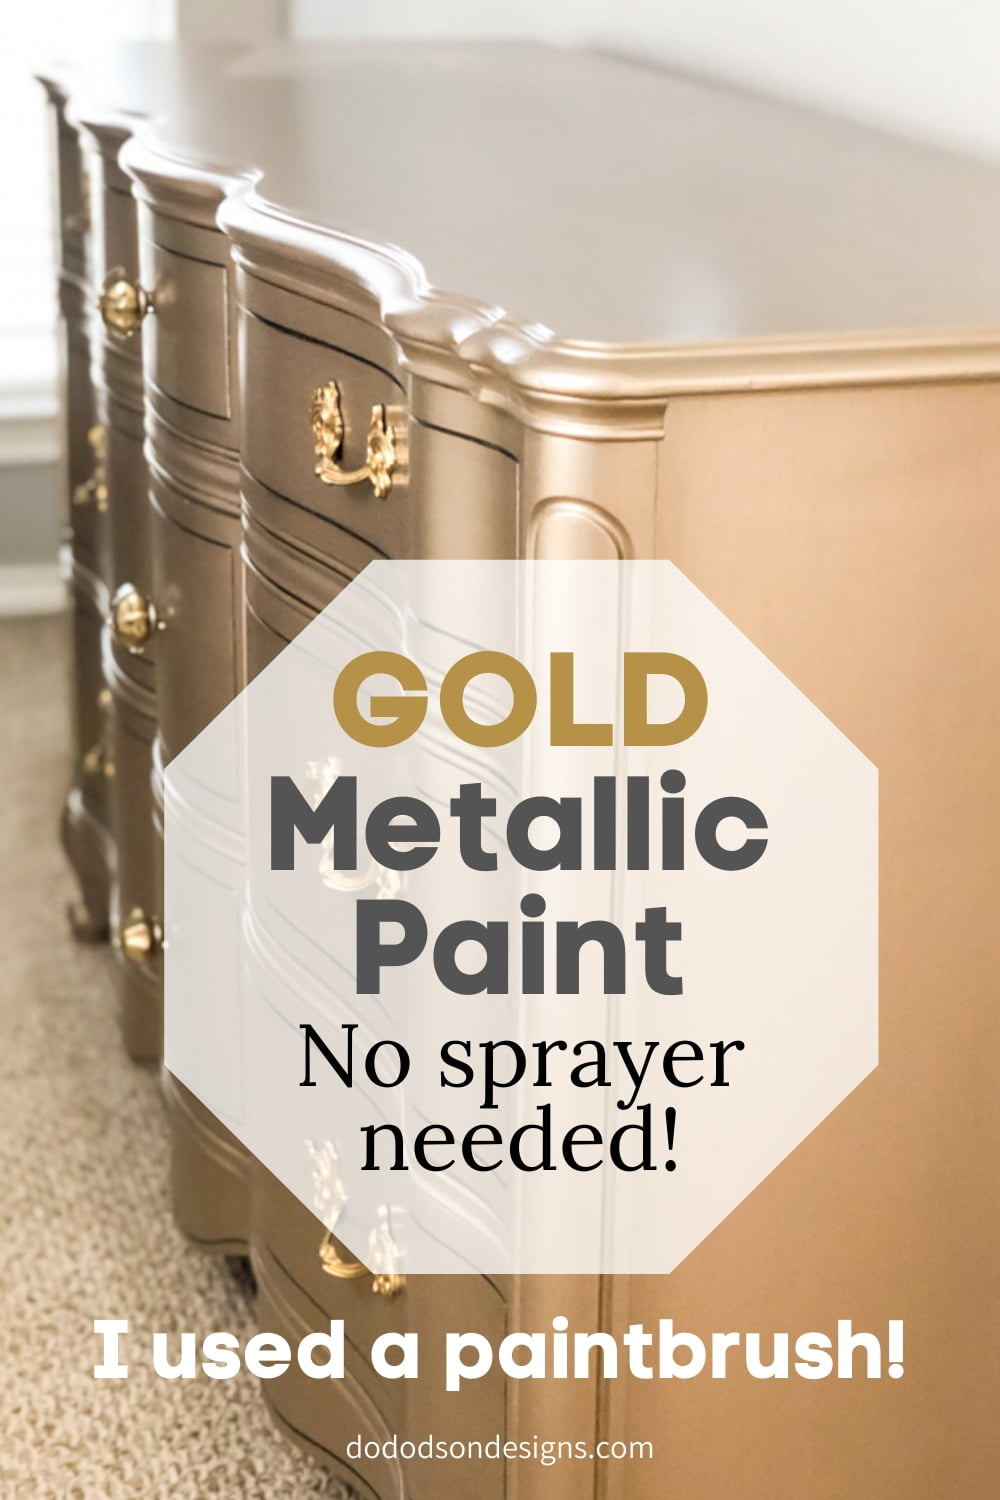 Metallic Paint On Furniture You Can Apply With A Paintbrush